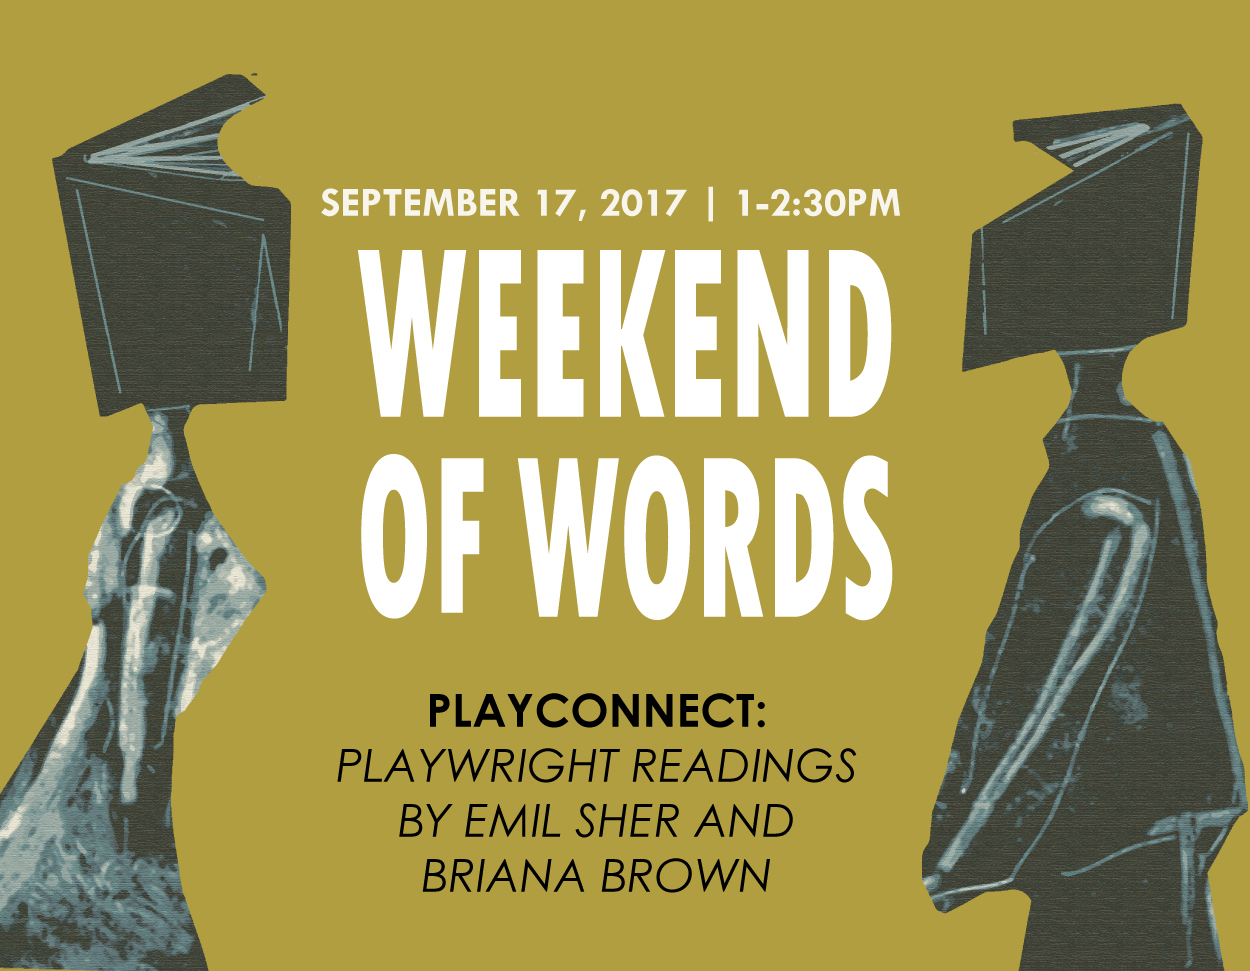 PlayConnect:Playwright Readings